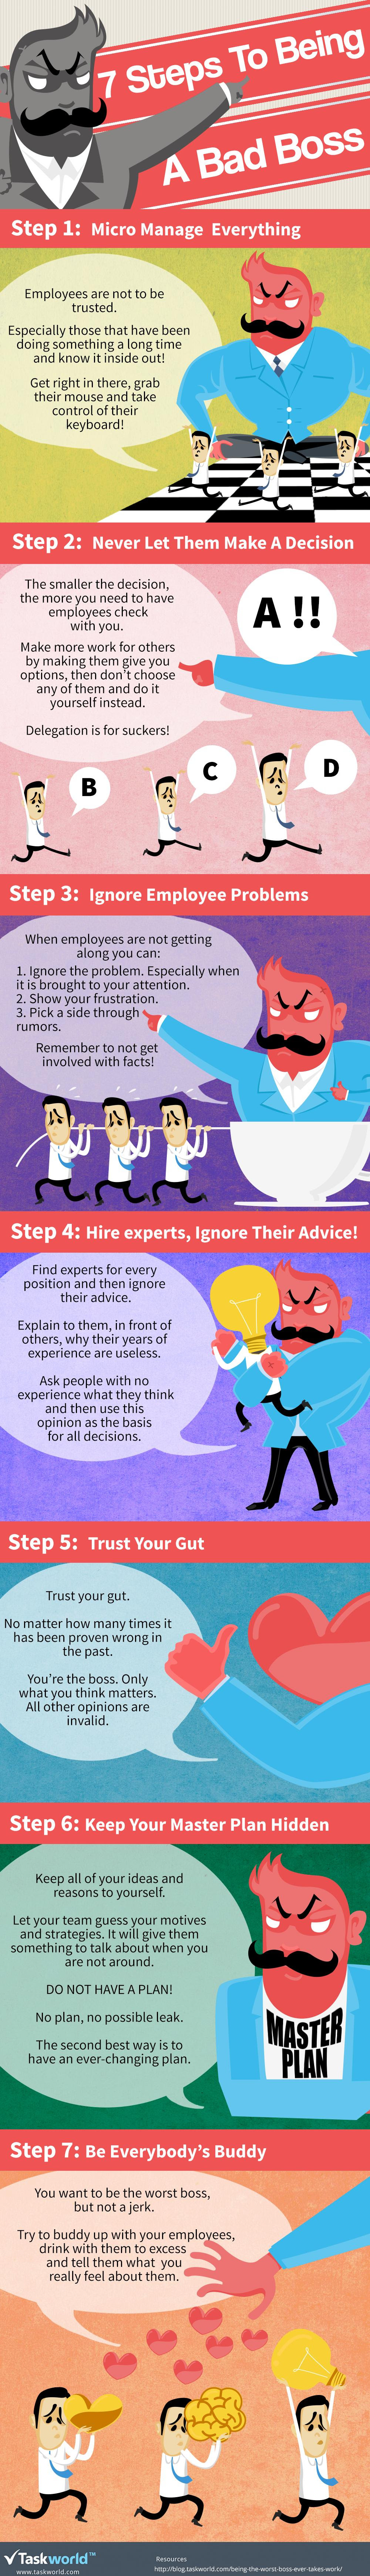 Infographic: 7 Steps to Being a Bad Boss